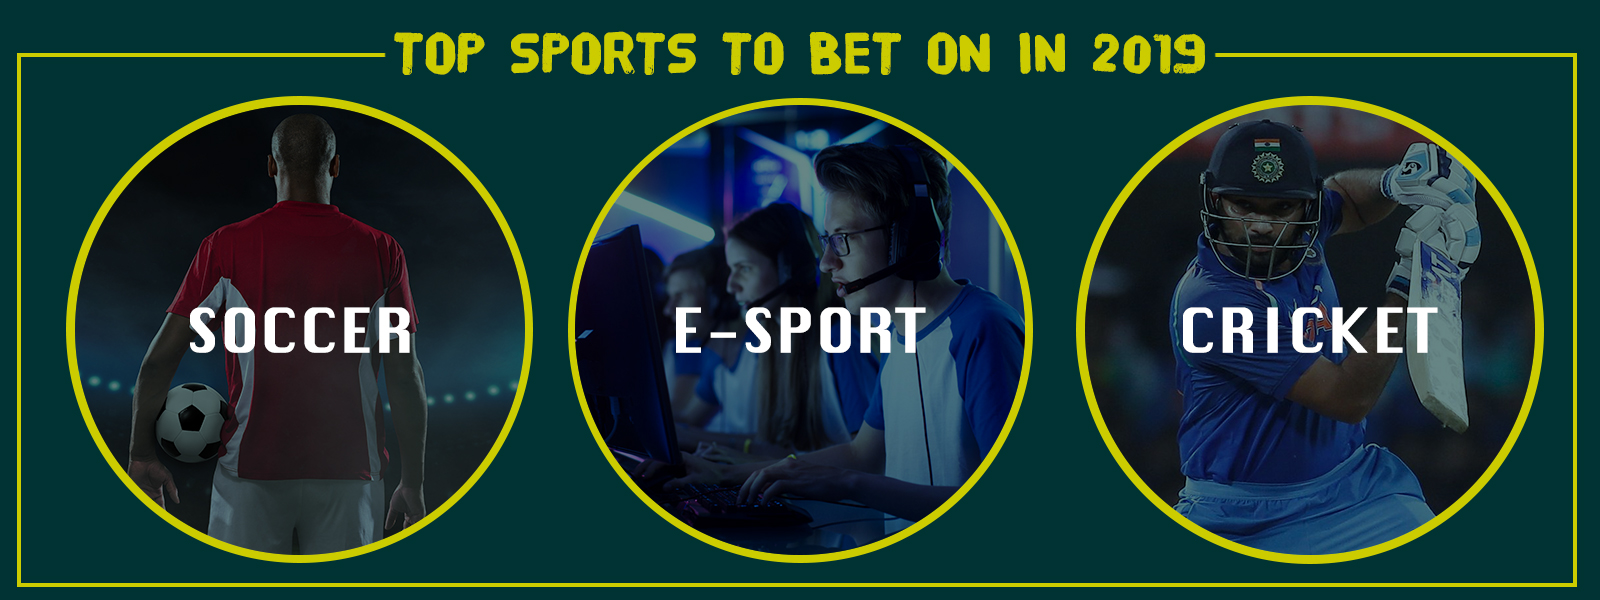 Top Sports to Bet on in 2019